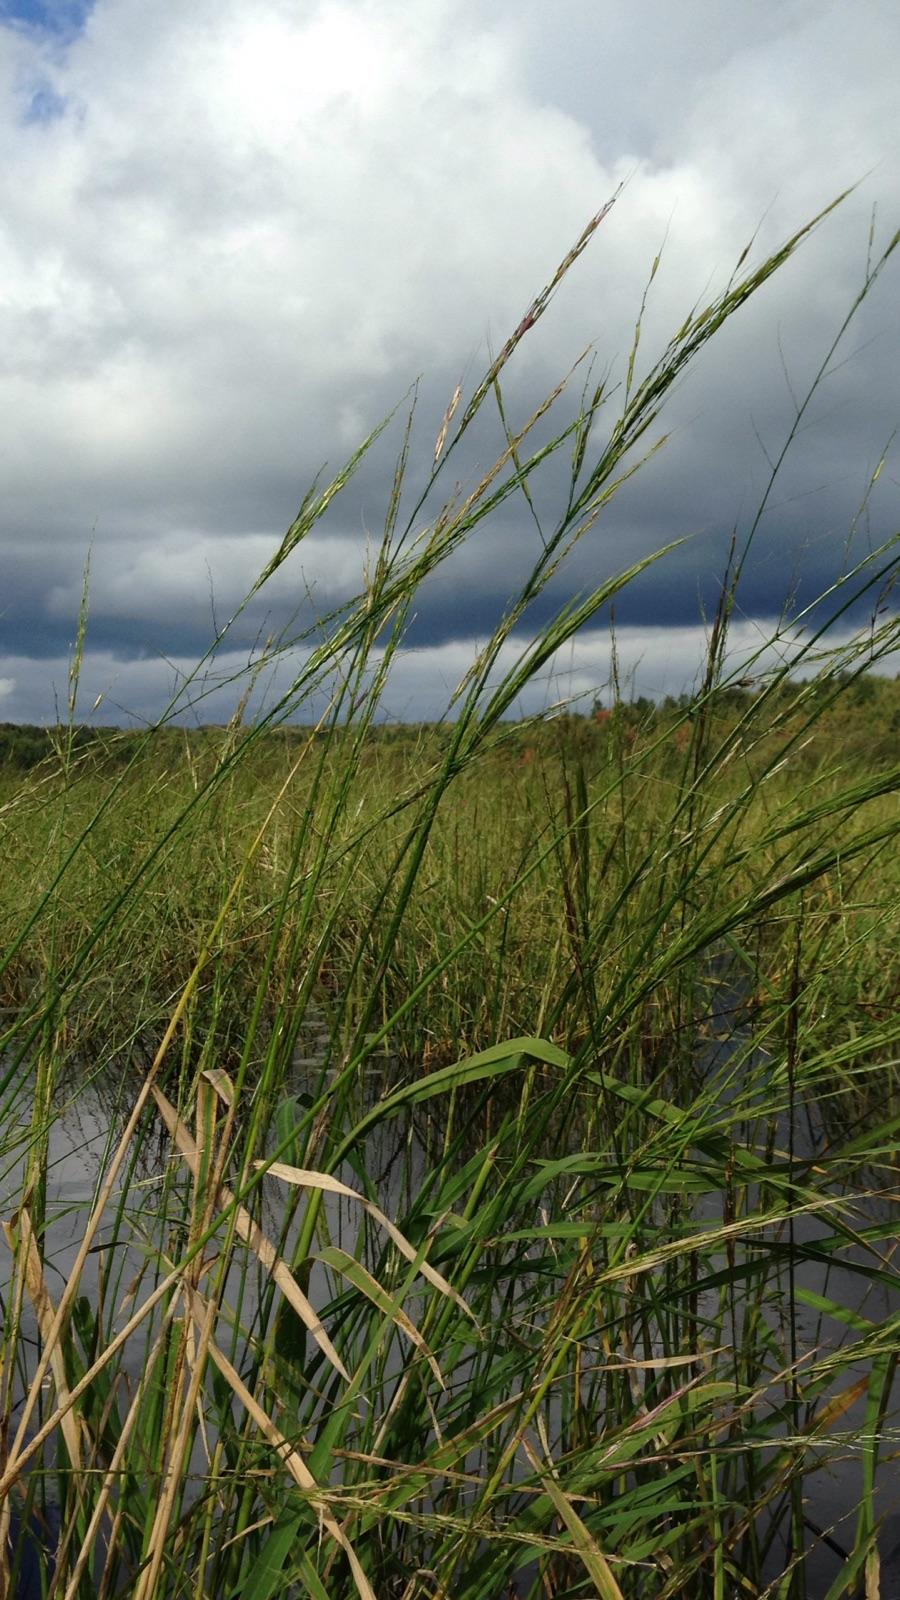 Restoring wild rice beds takes years of re-seeding and management. Photo: Barb Barton